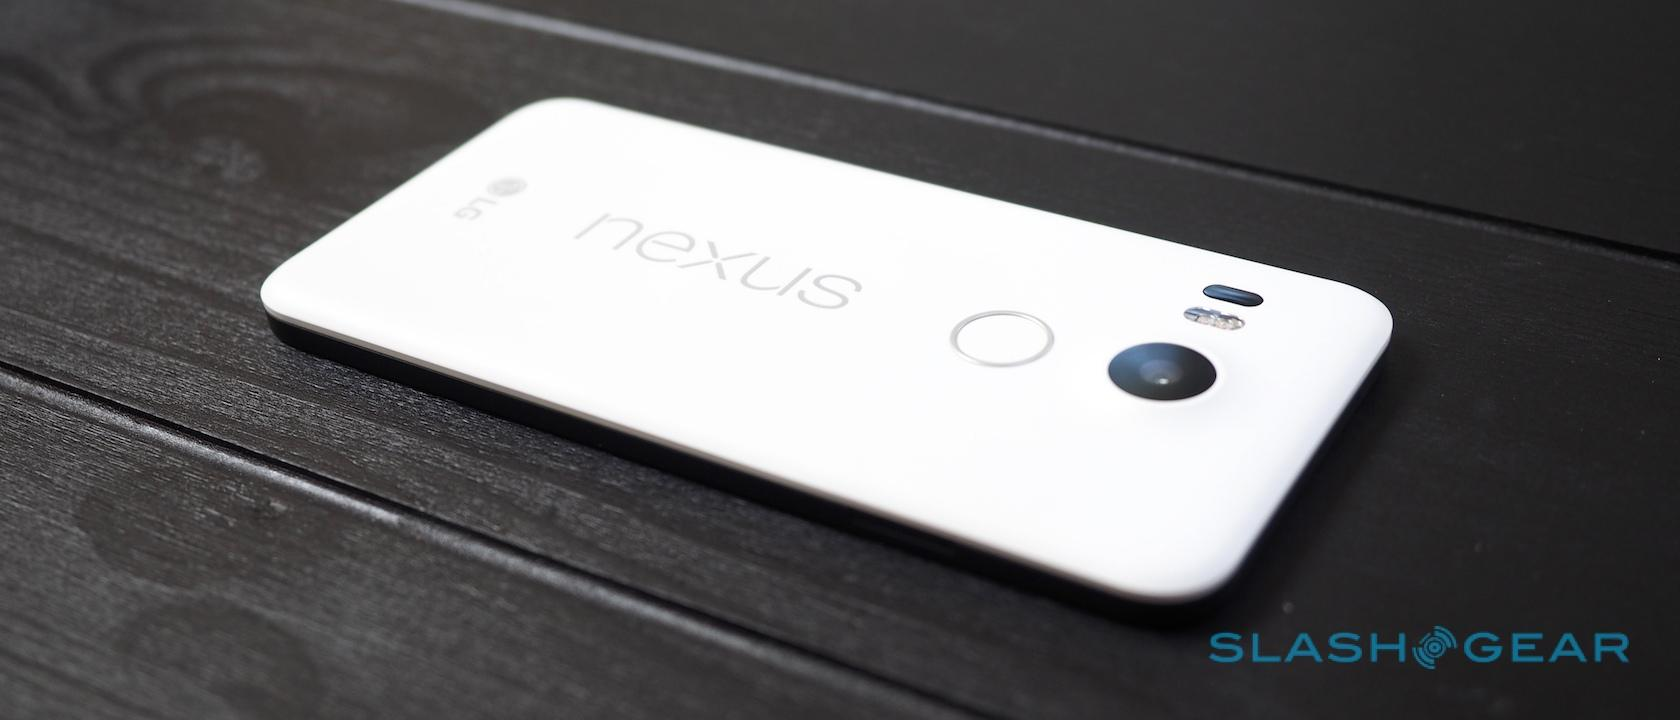 Nexus 5X, 6P get their last updates, marks the end of an era - SlashGear